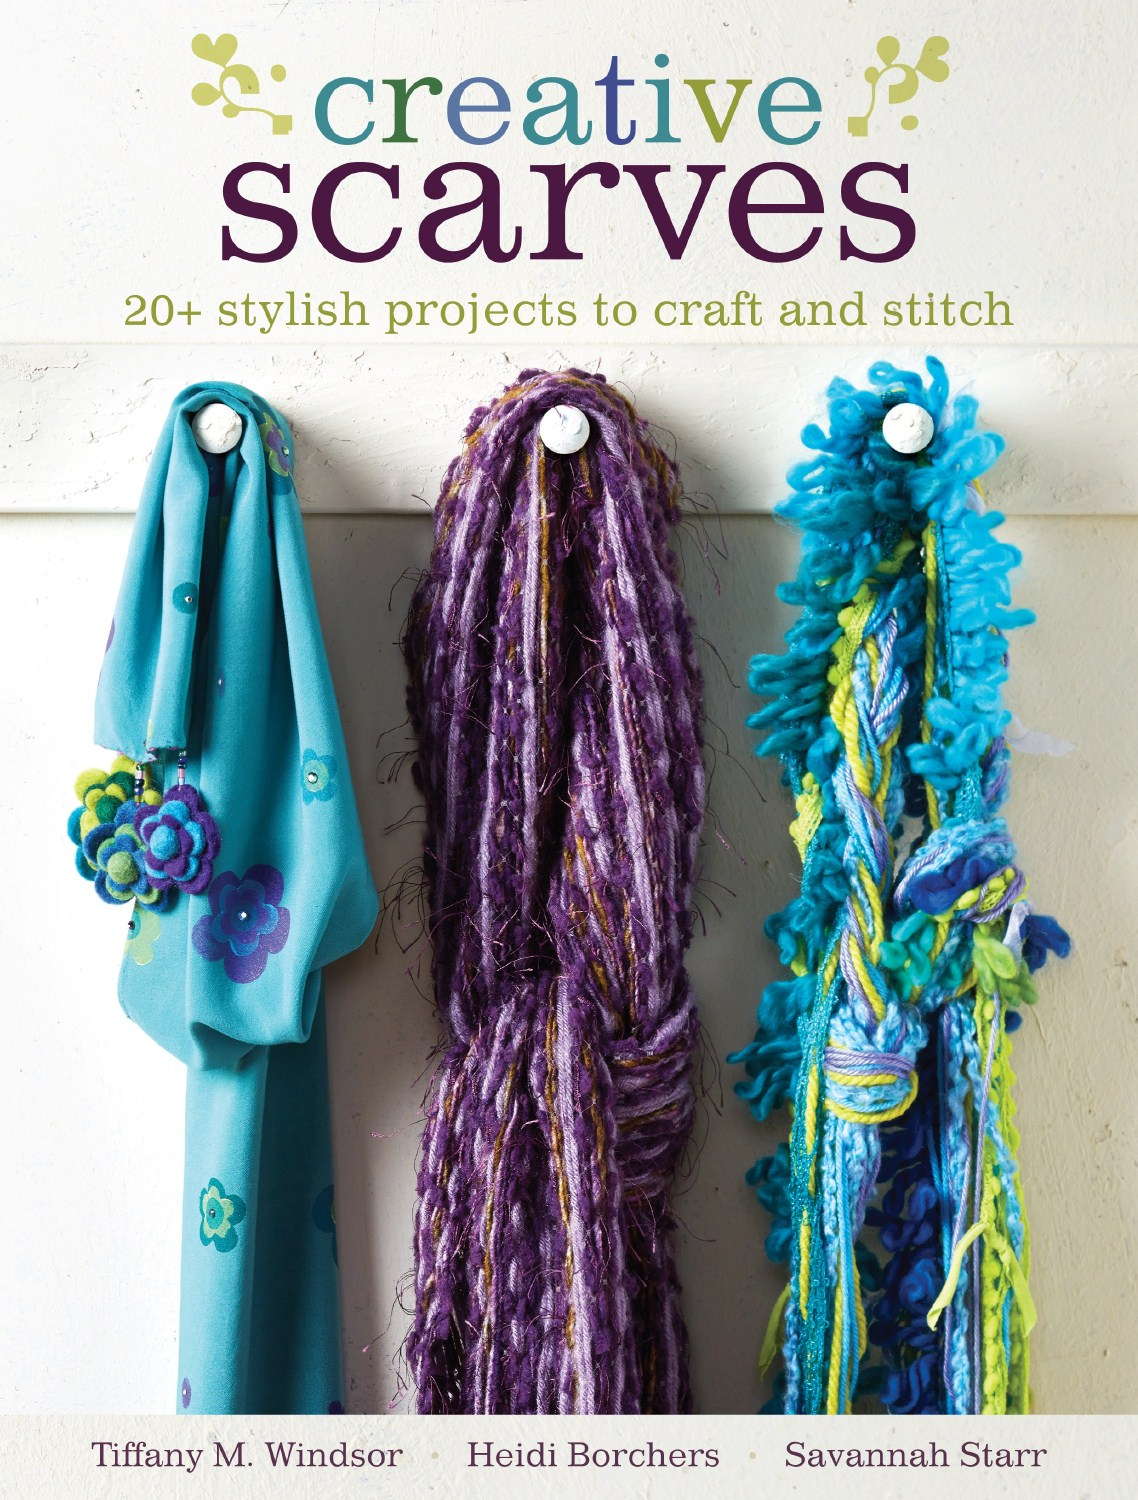 Creative Scarves book cover